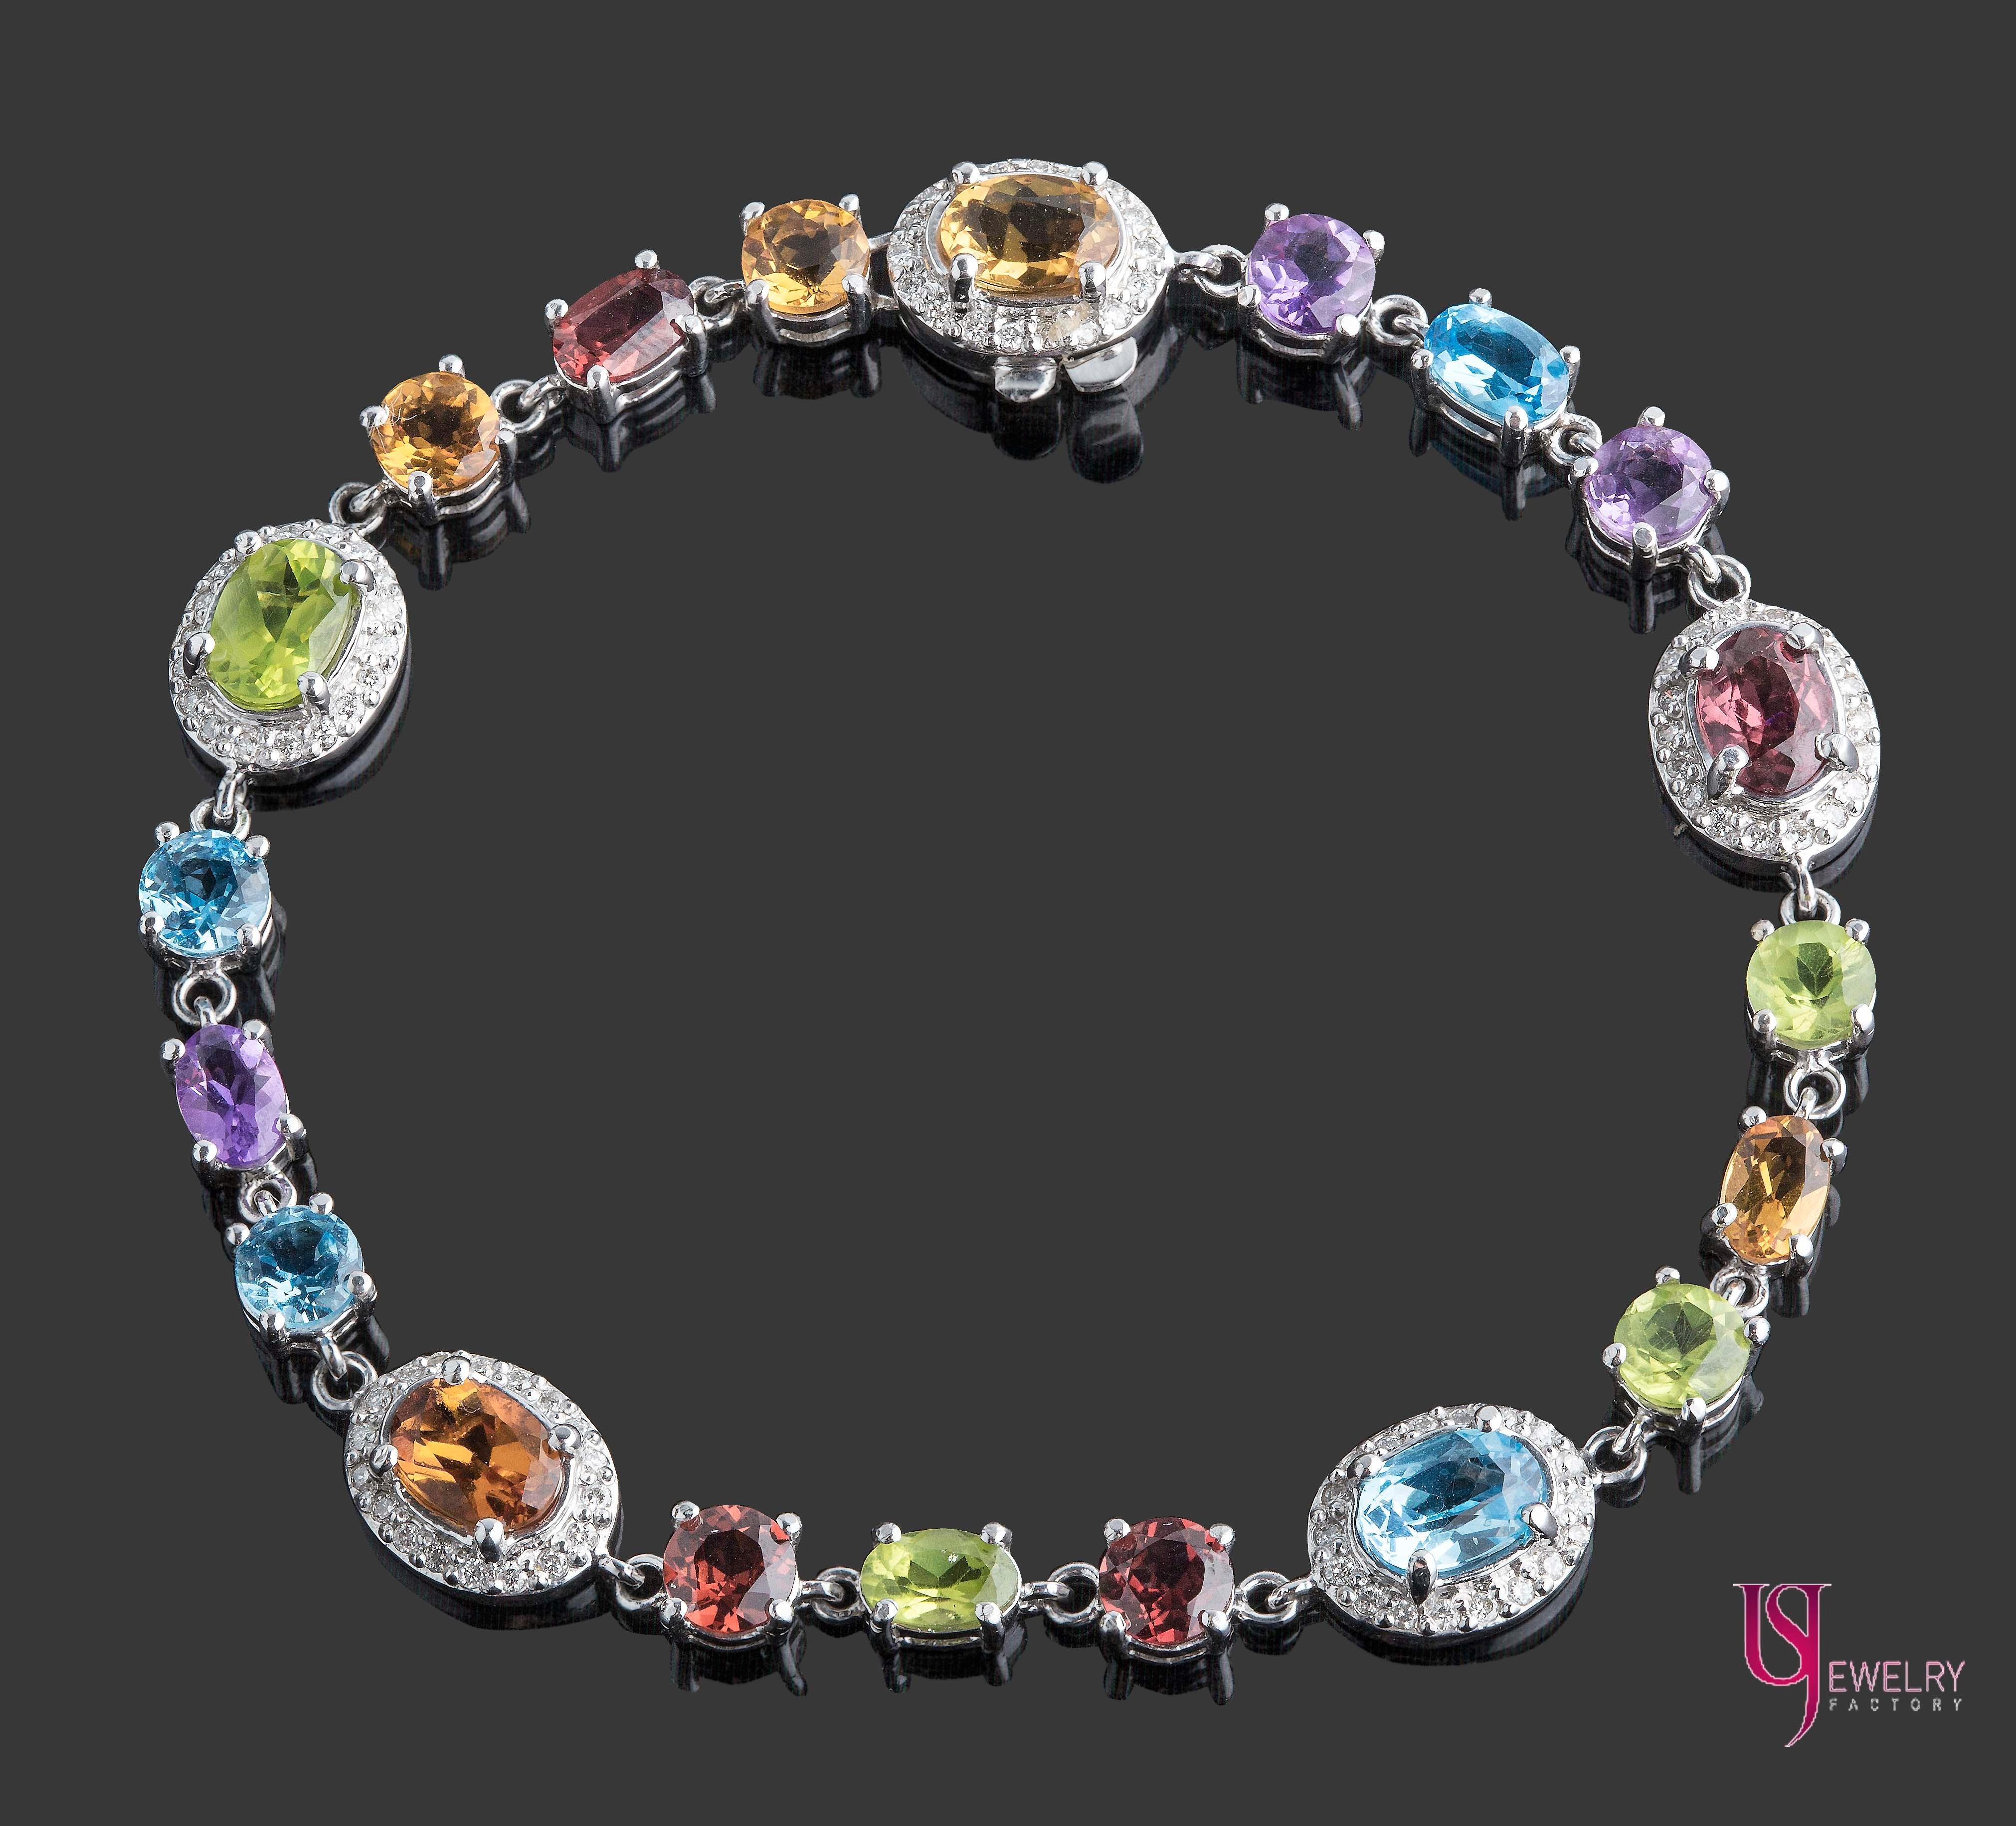 Us jewelry factory coupons near me in new york 8coupons for Local jewelry stores near me